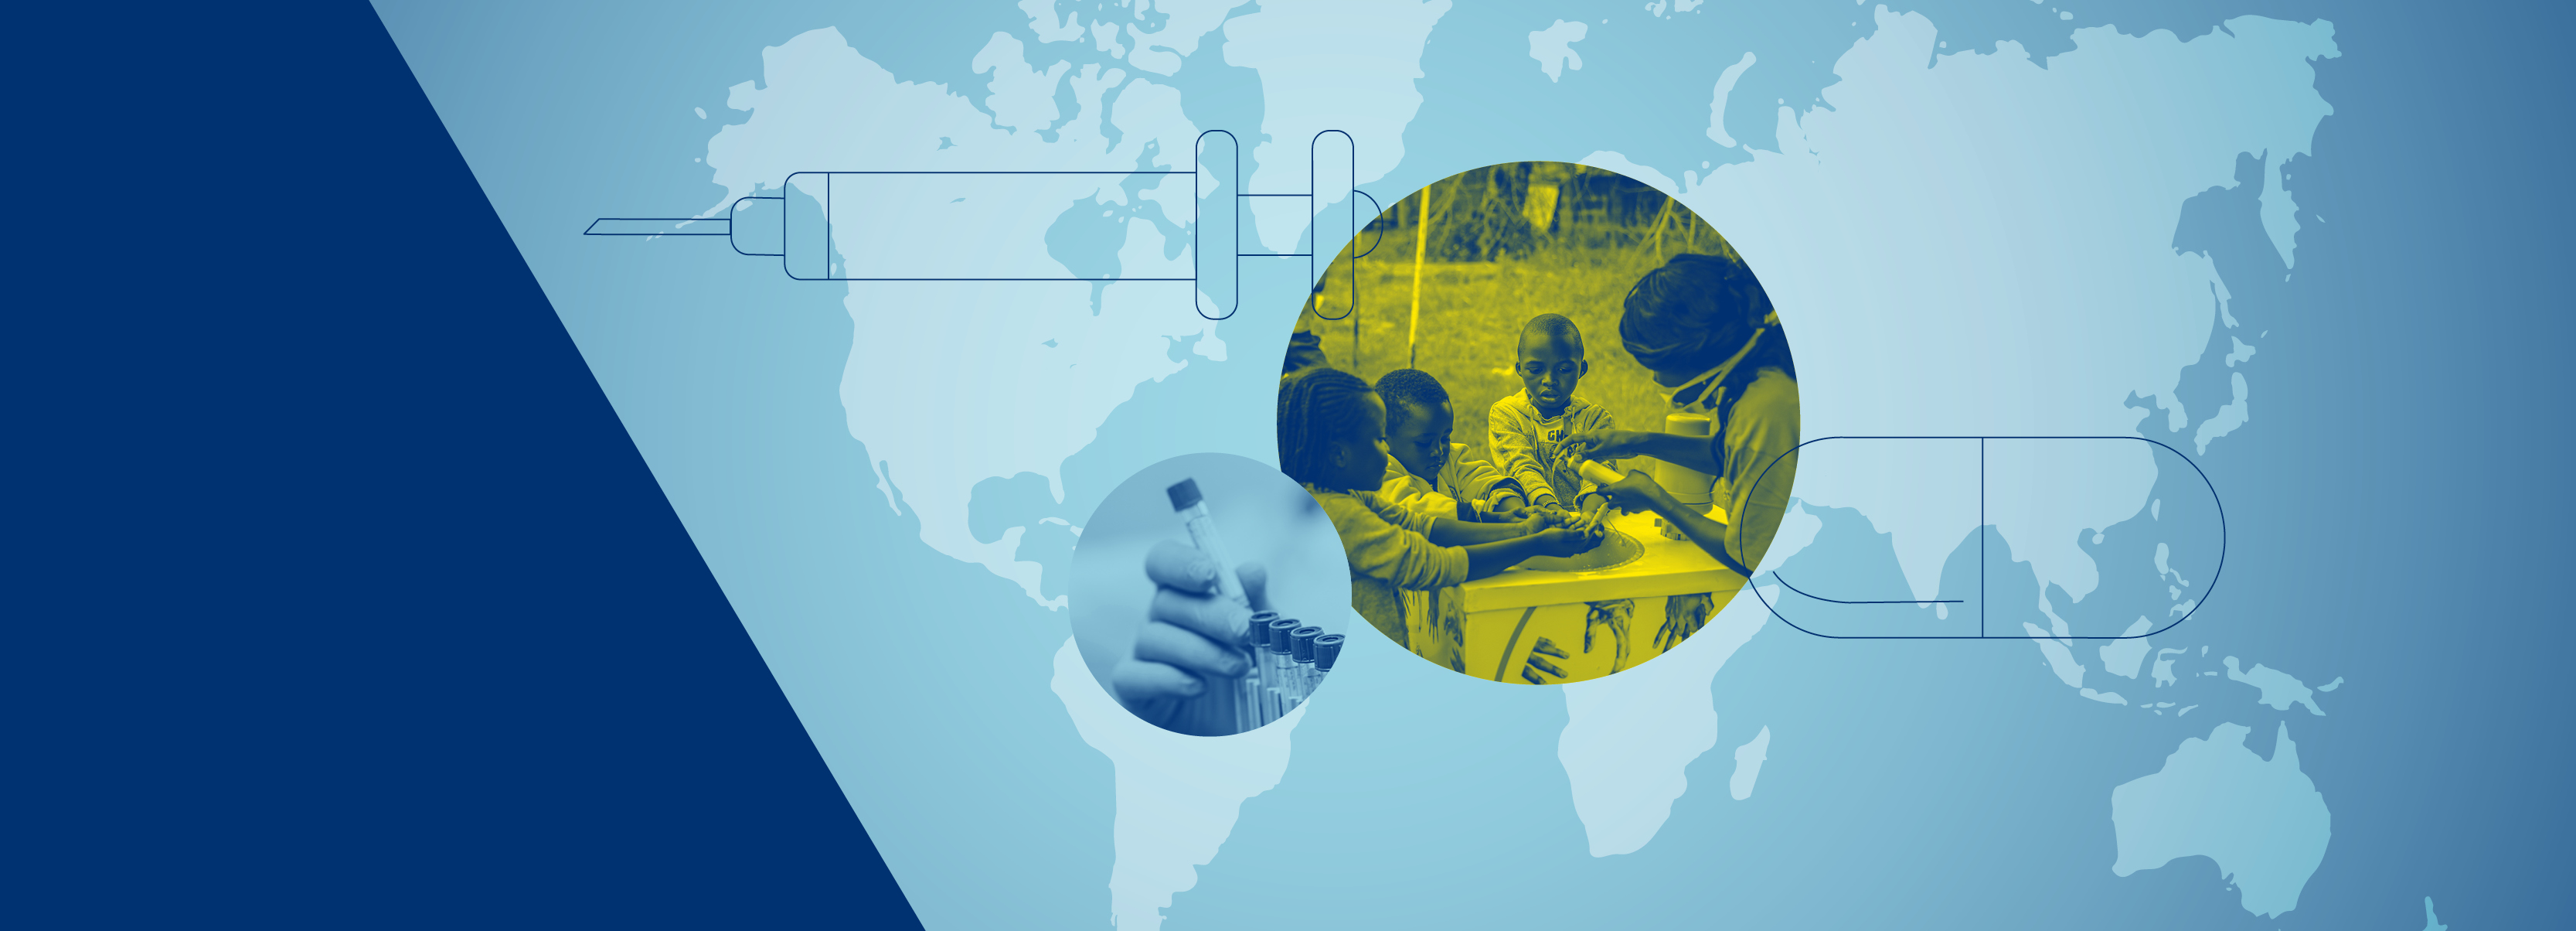 Graphic showing a map of the world, a hand holding a test tube and three children washing their hands